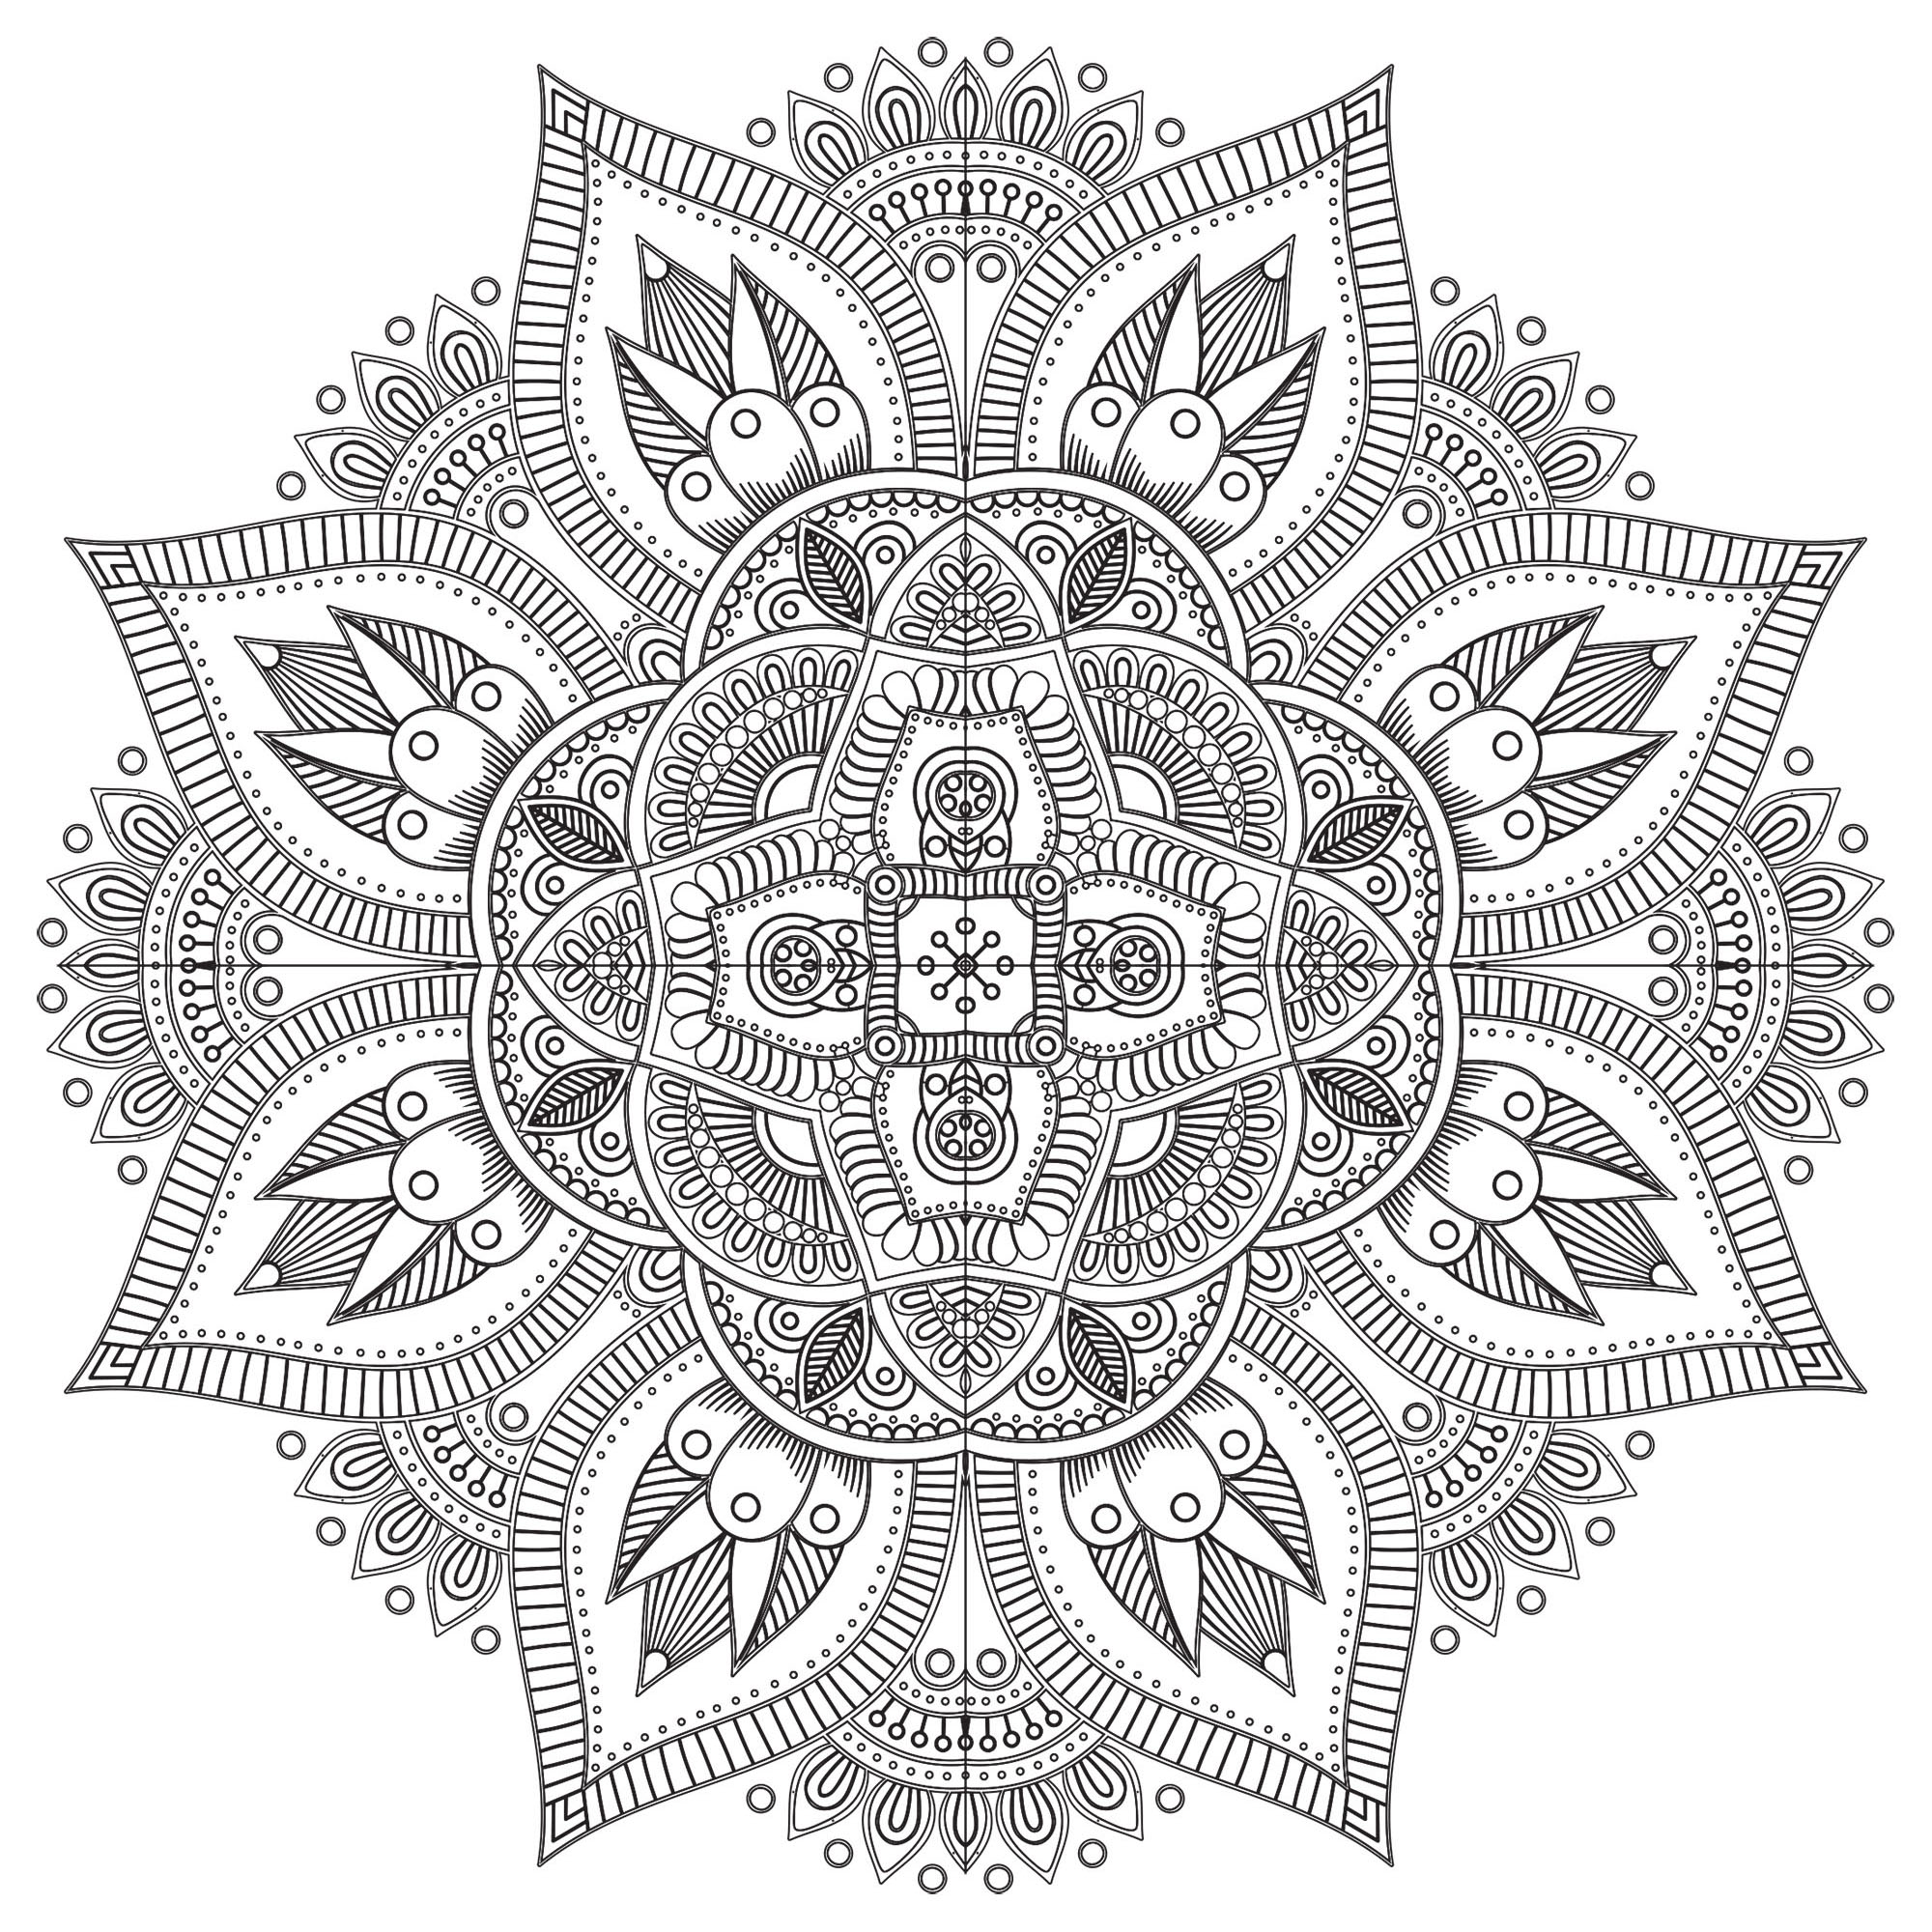 When coloring really becomes Art Therapy ... This is the case with this Mandala very harmonious and delicate. Symbolic Meaning of Mandala. Mandalas offer balancing visual elements, symbolizing unity and harmony.